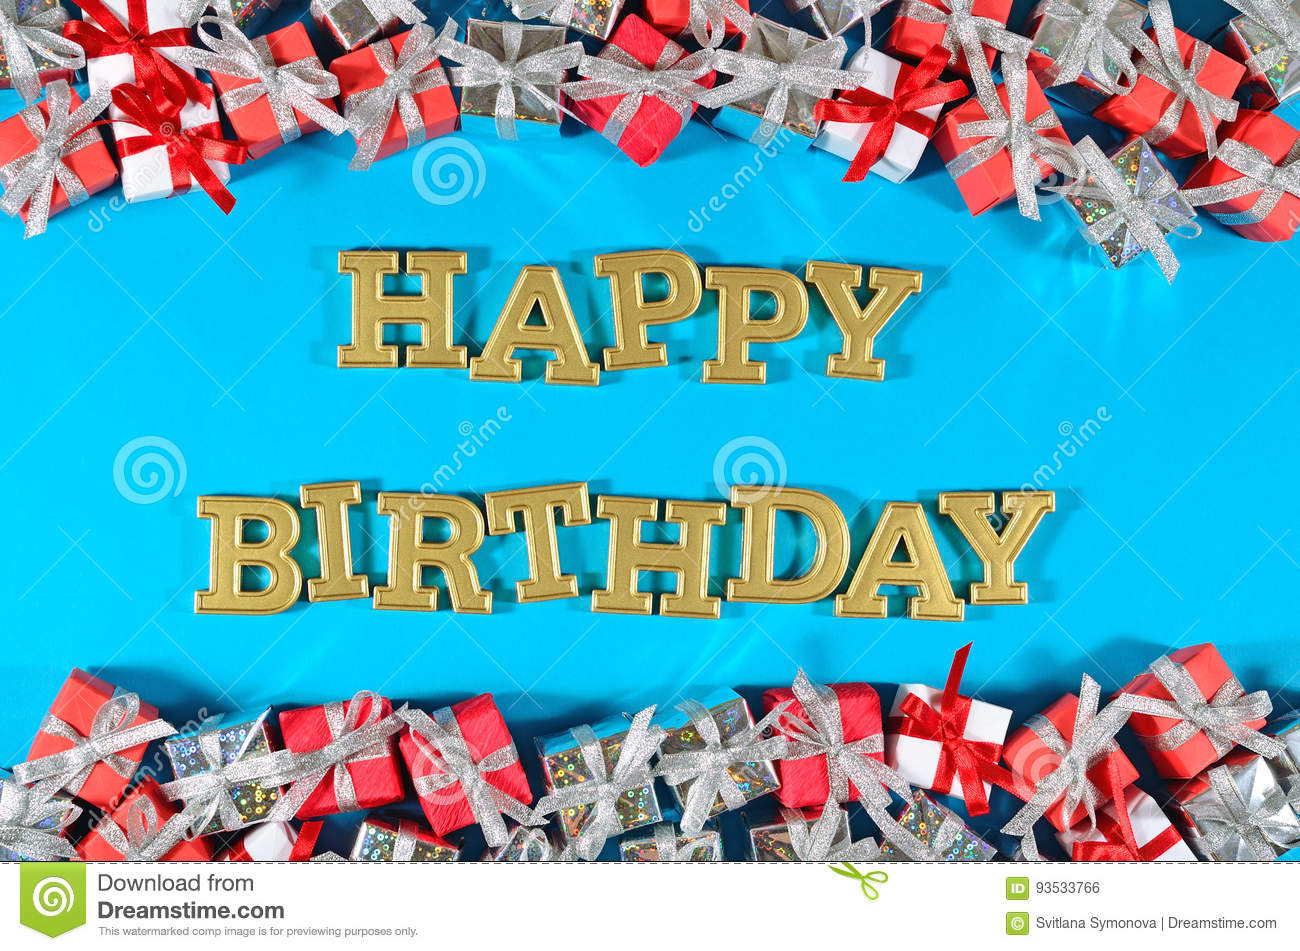 Happy birthday golden text and silver and red gifts on a blue